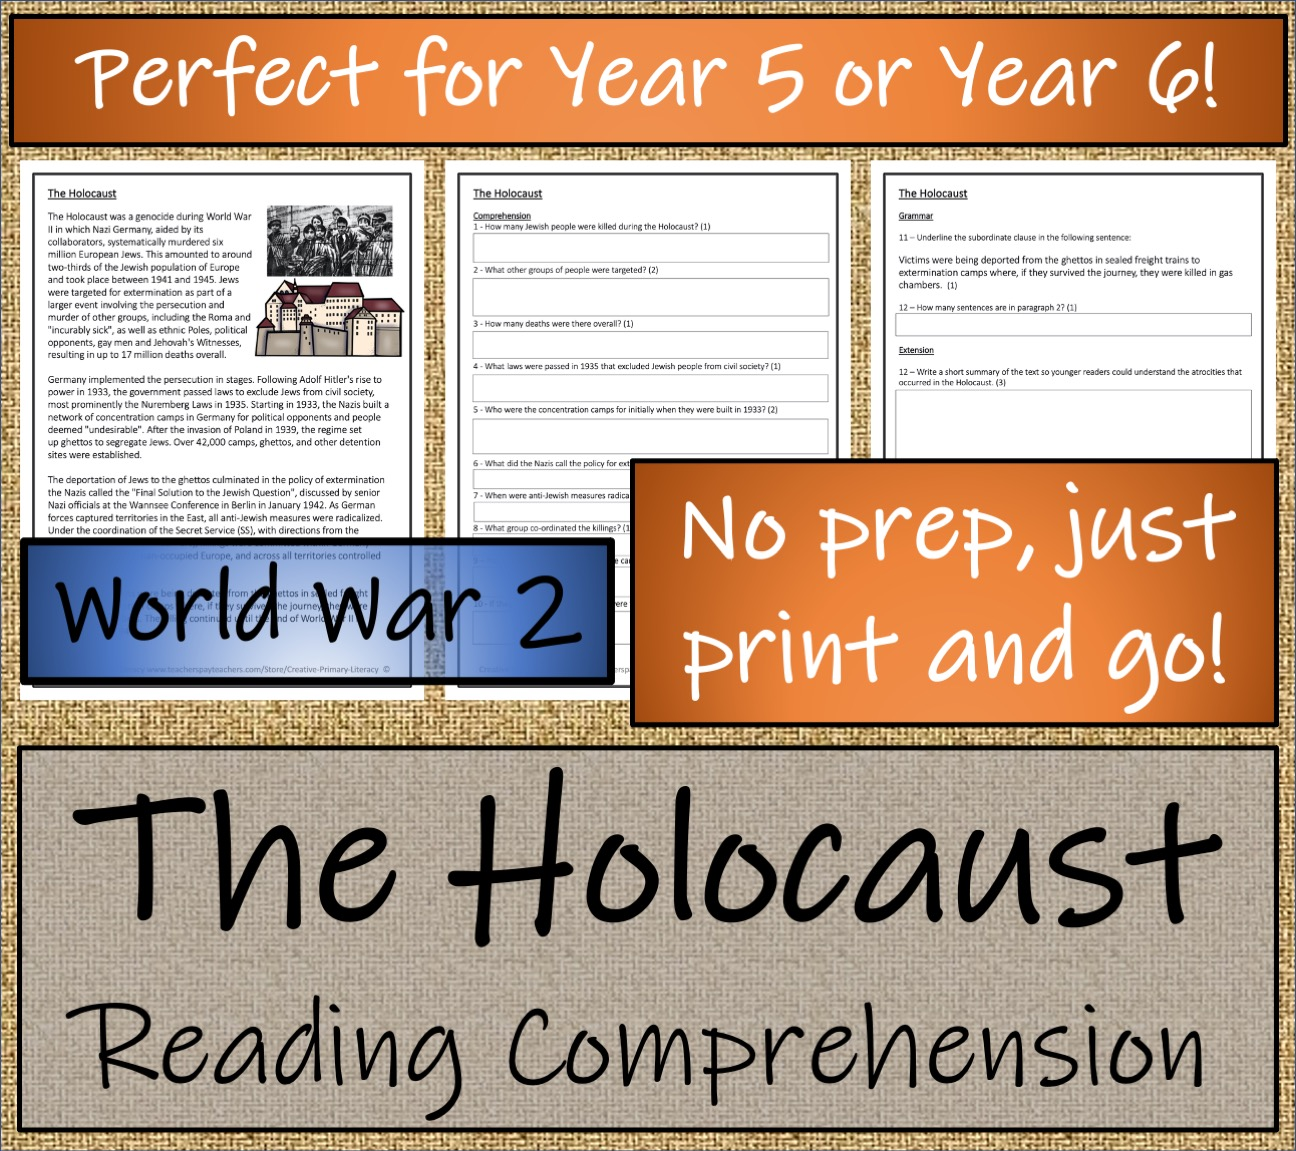 Uks2 The Holocaust Reading Comprehension Activity Teaching Resources [ 1151 x 1296 Pixel ]